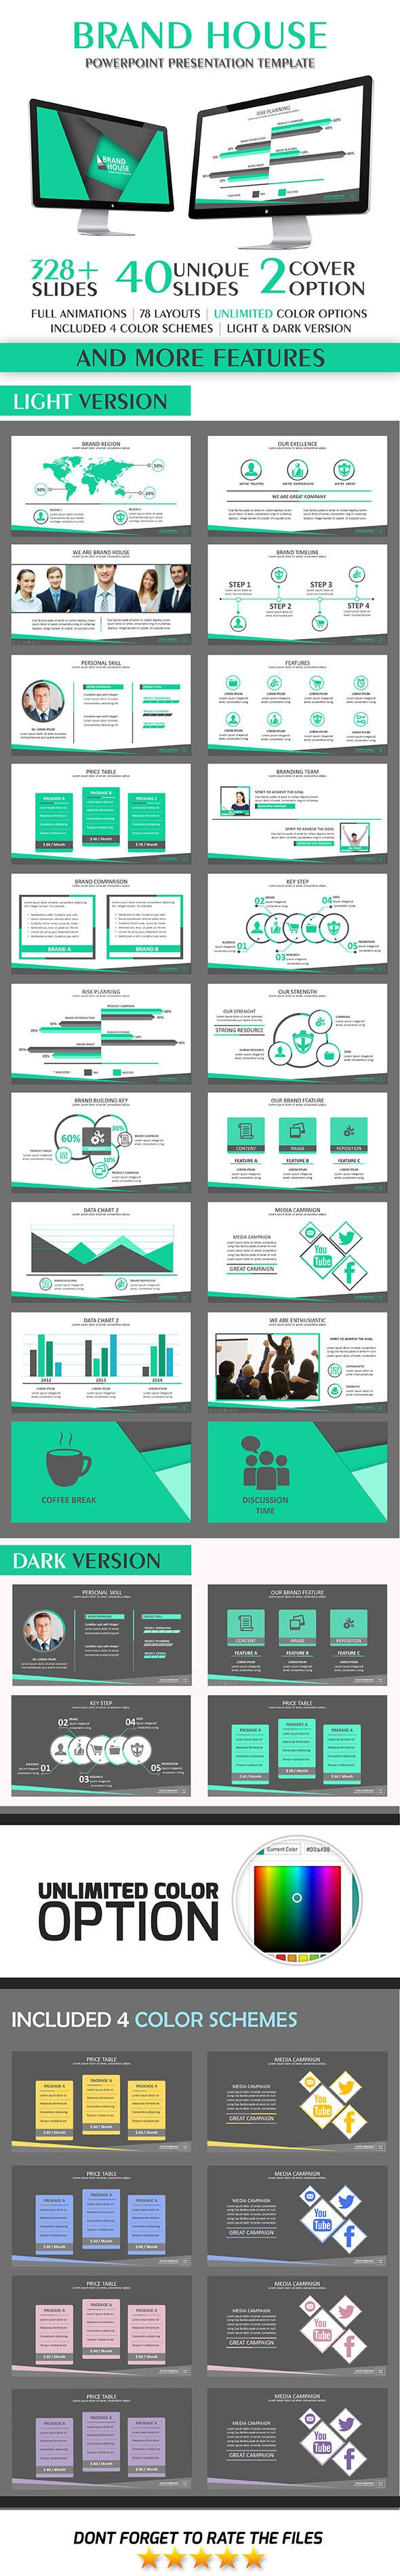 102 best powerpoint templates images on pinterest | power point, Powerpoint templates